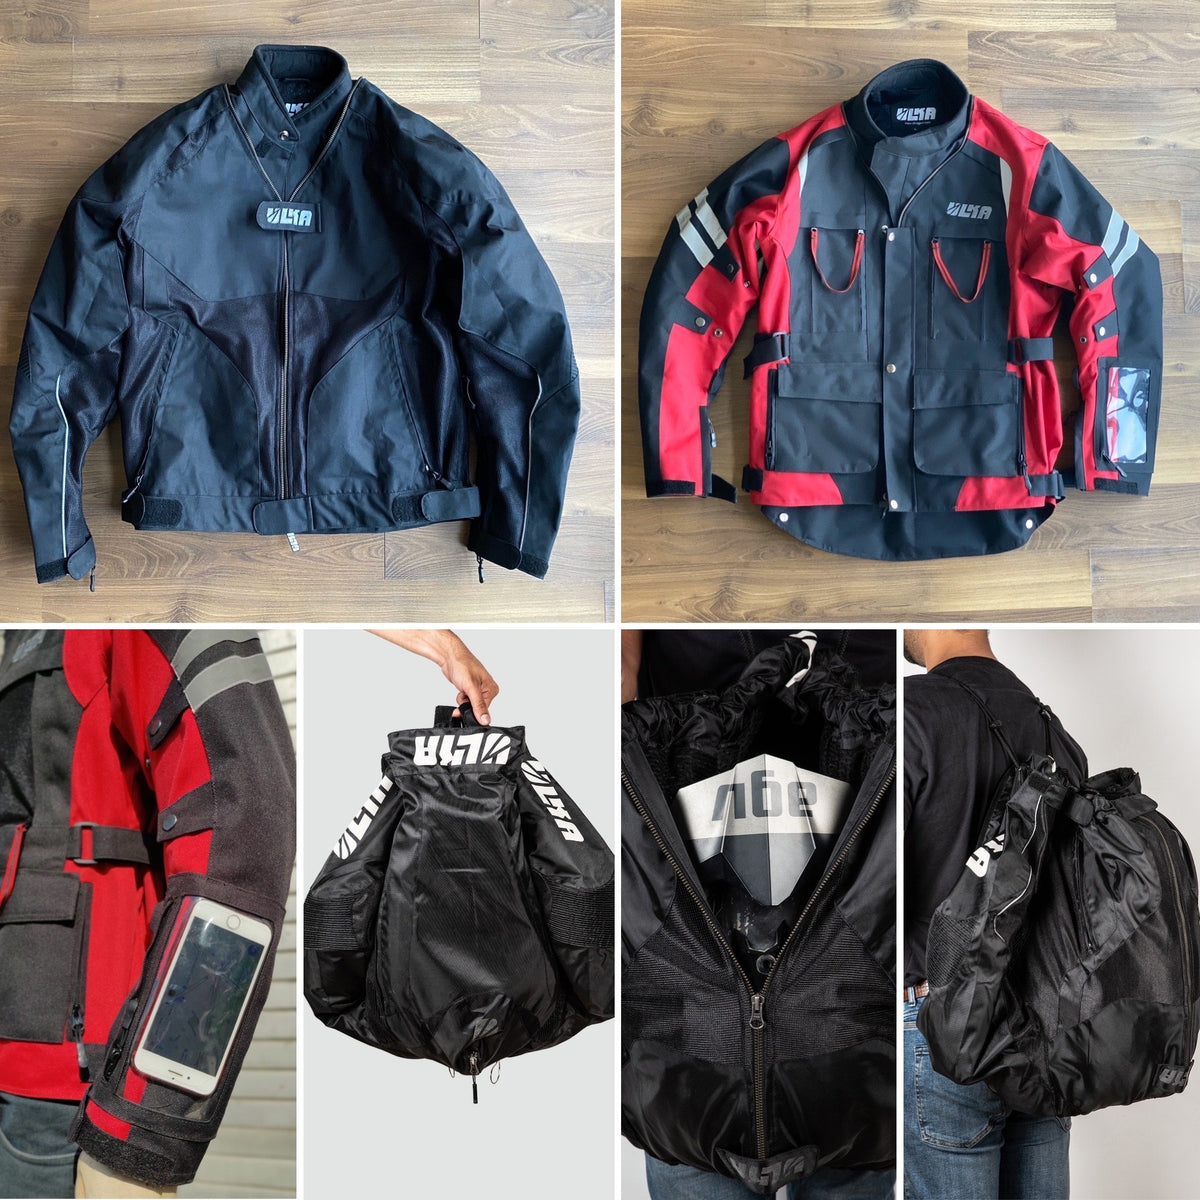 Motorcycle Riding Jacket - Ulka gear Hakkit - Convertible to backpack